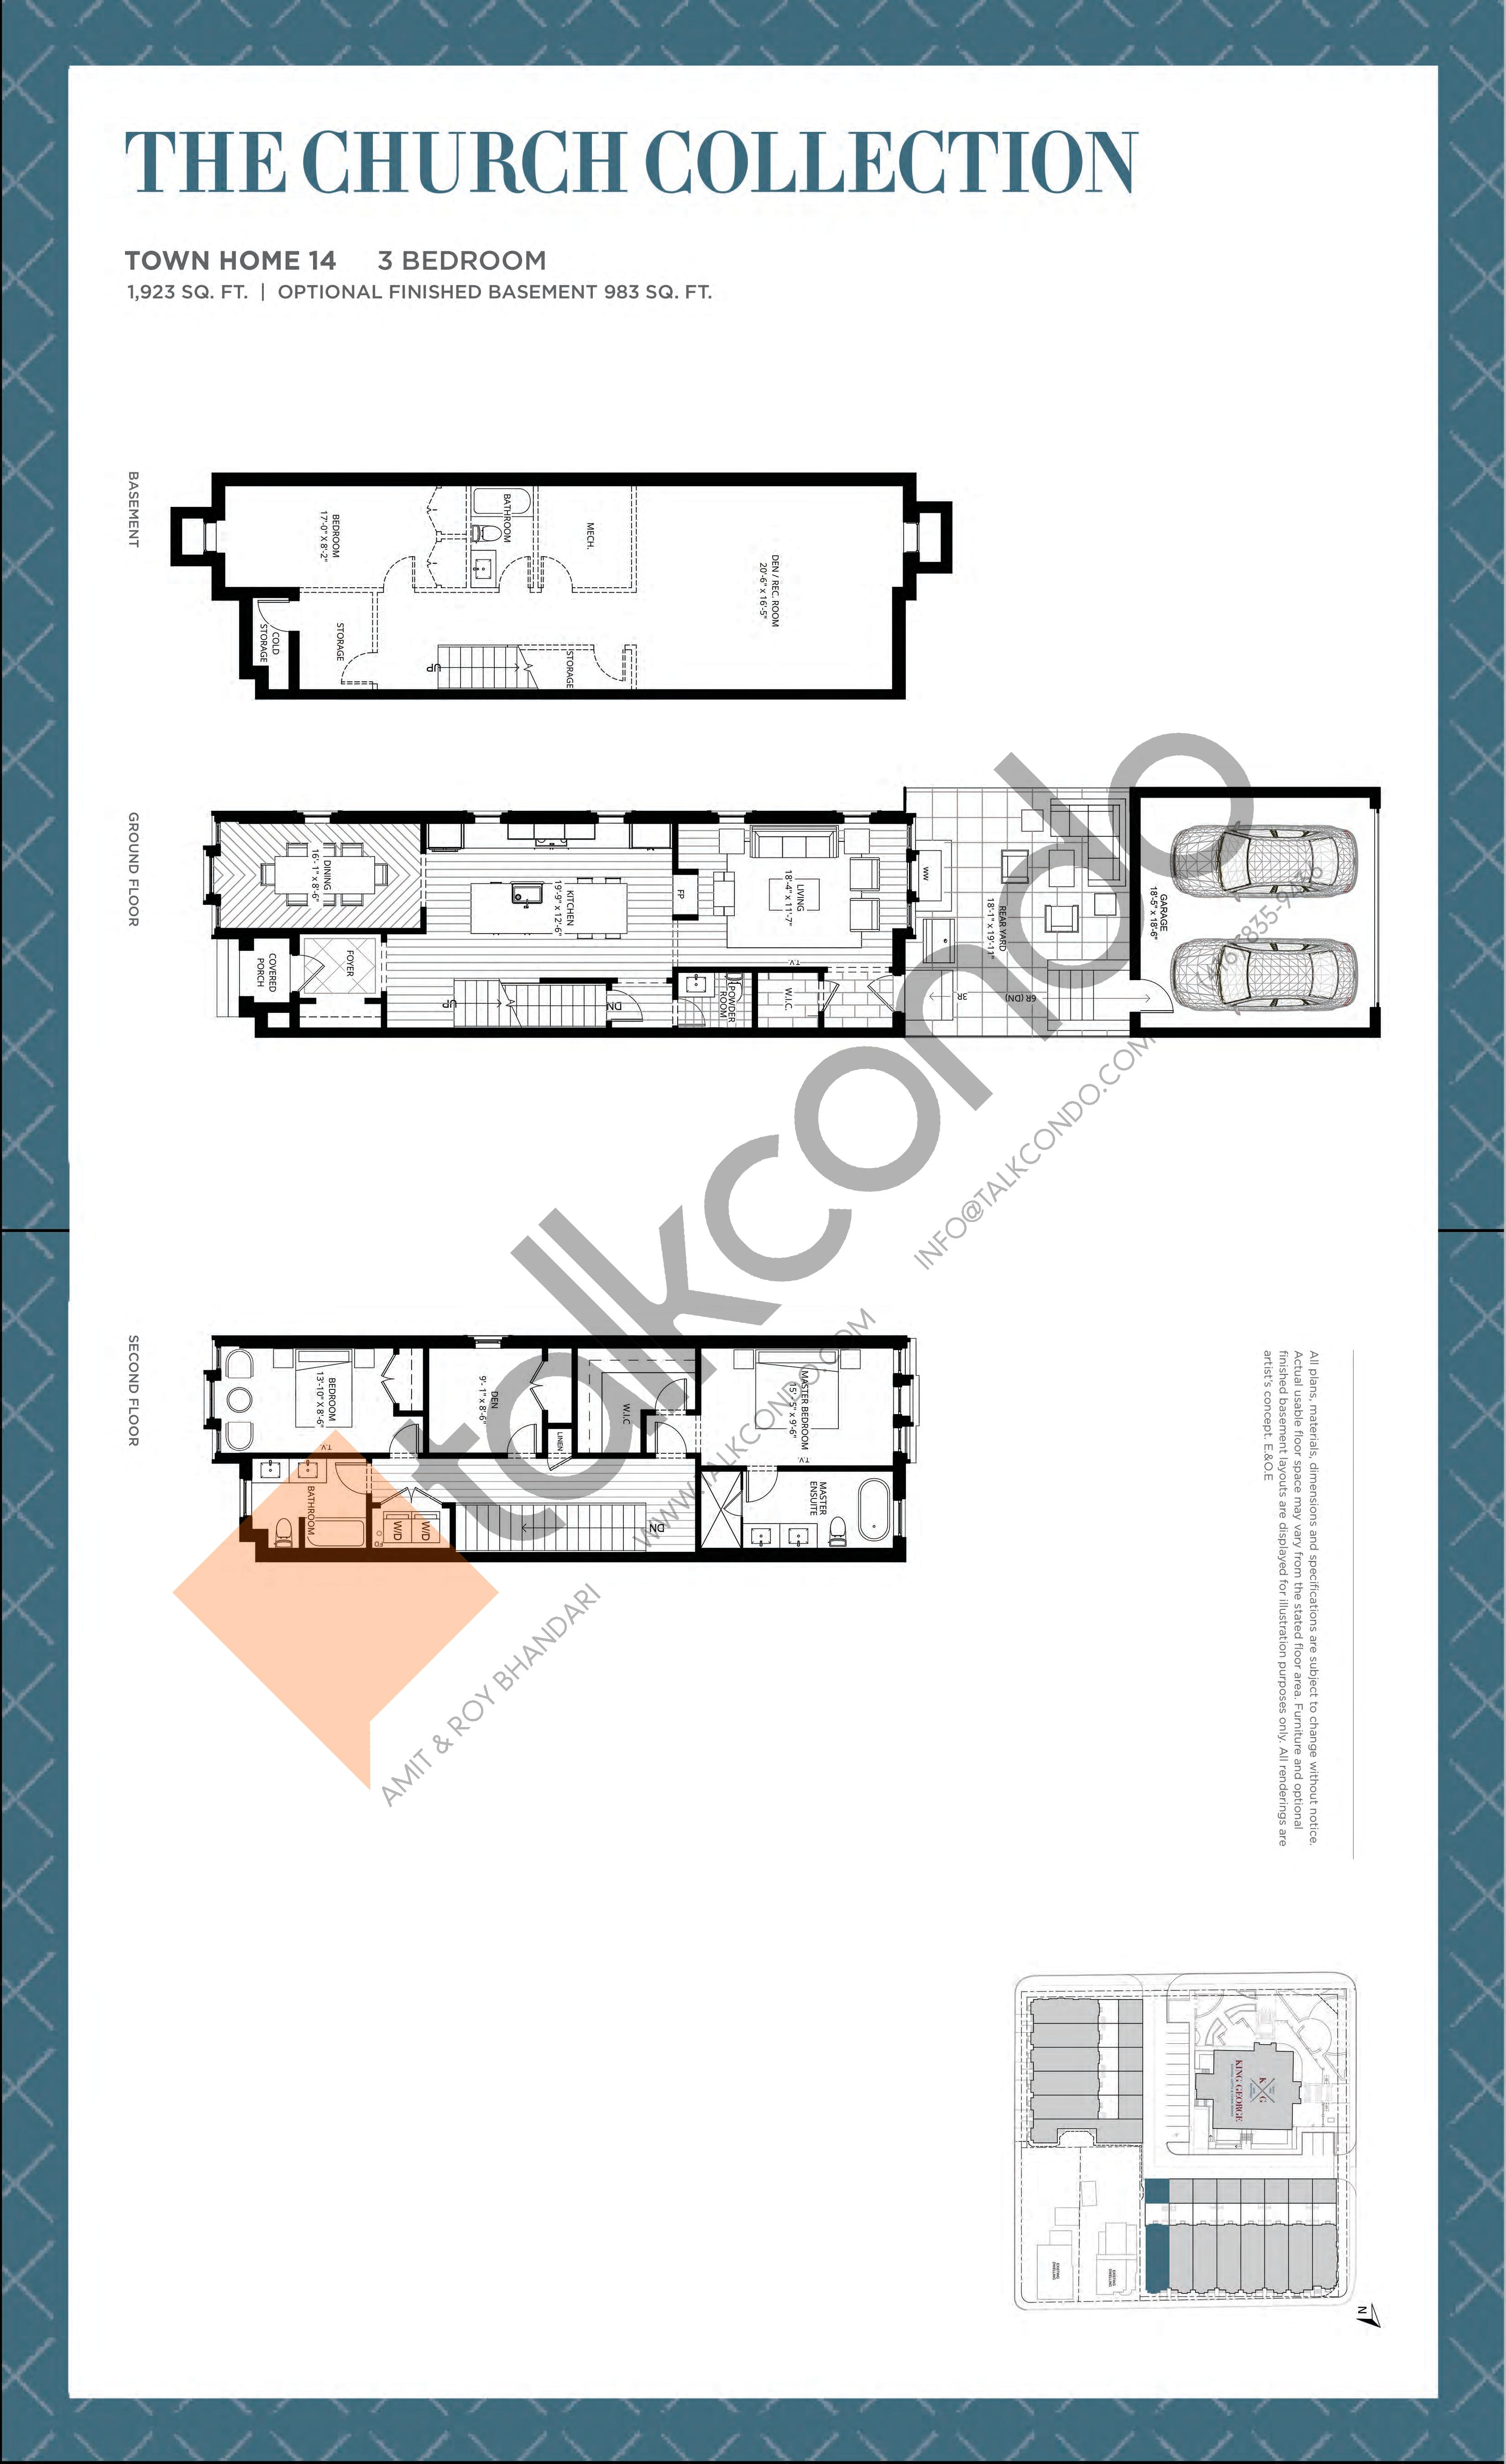 Town Home 14 - The Church Collection Floor Plan at King George School Lofts & Town Homes - 1923 sq.ft